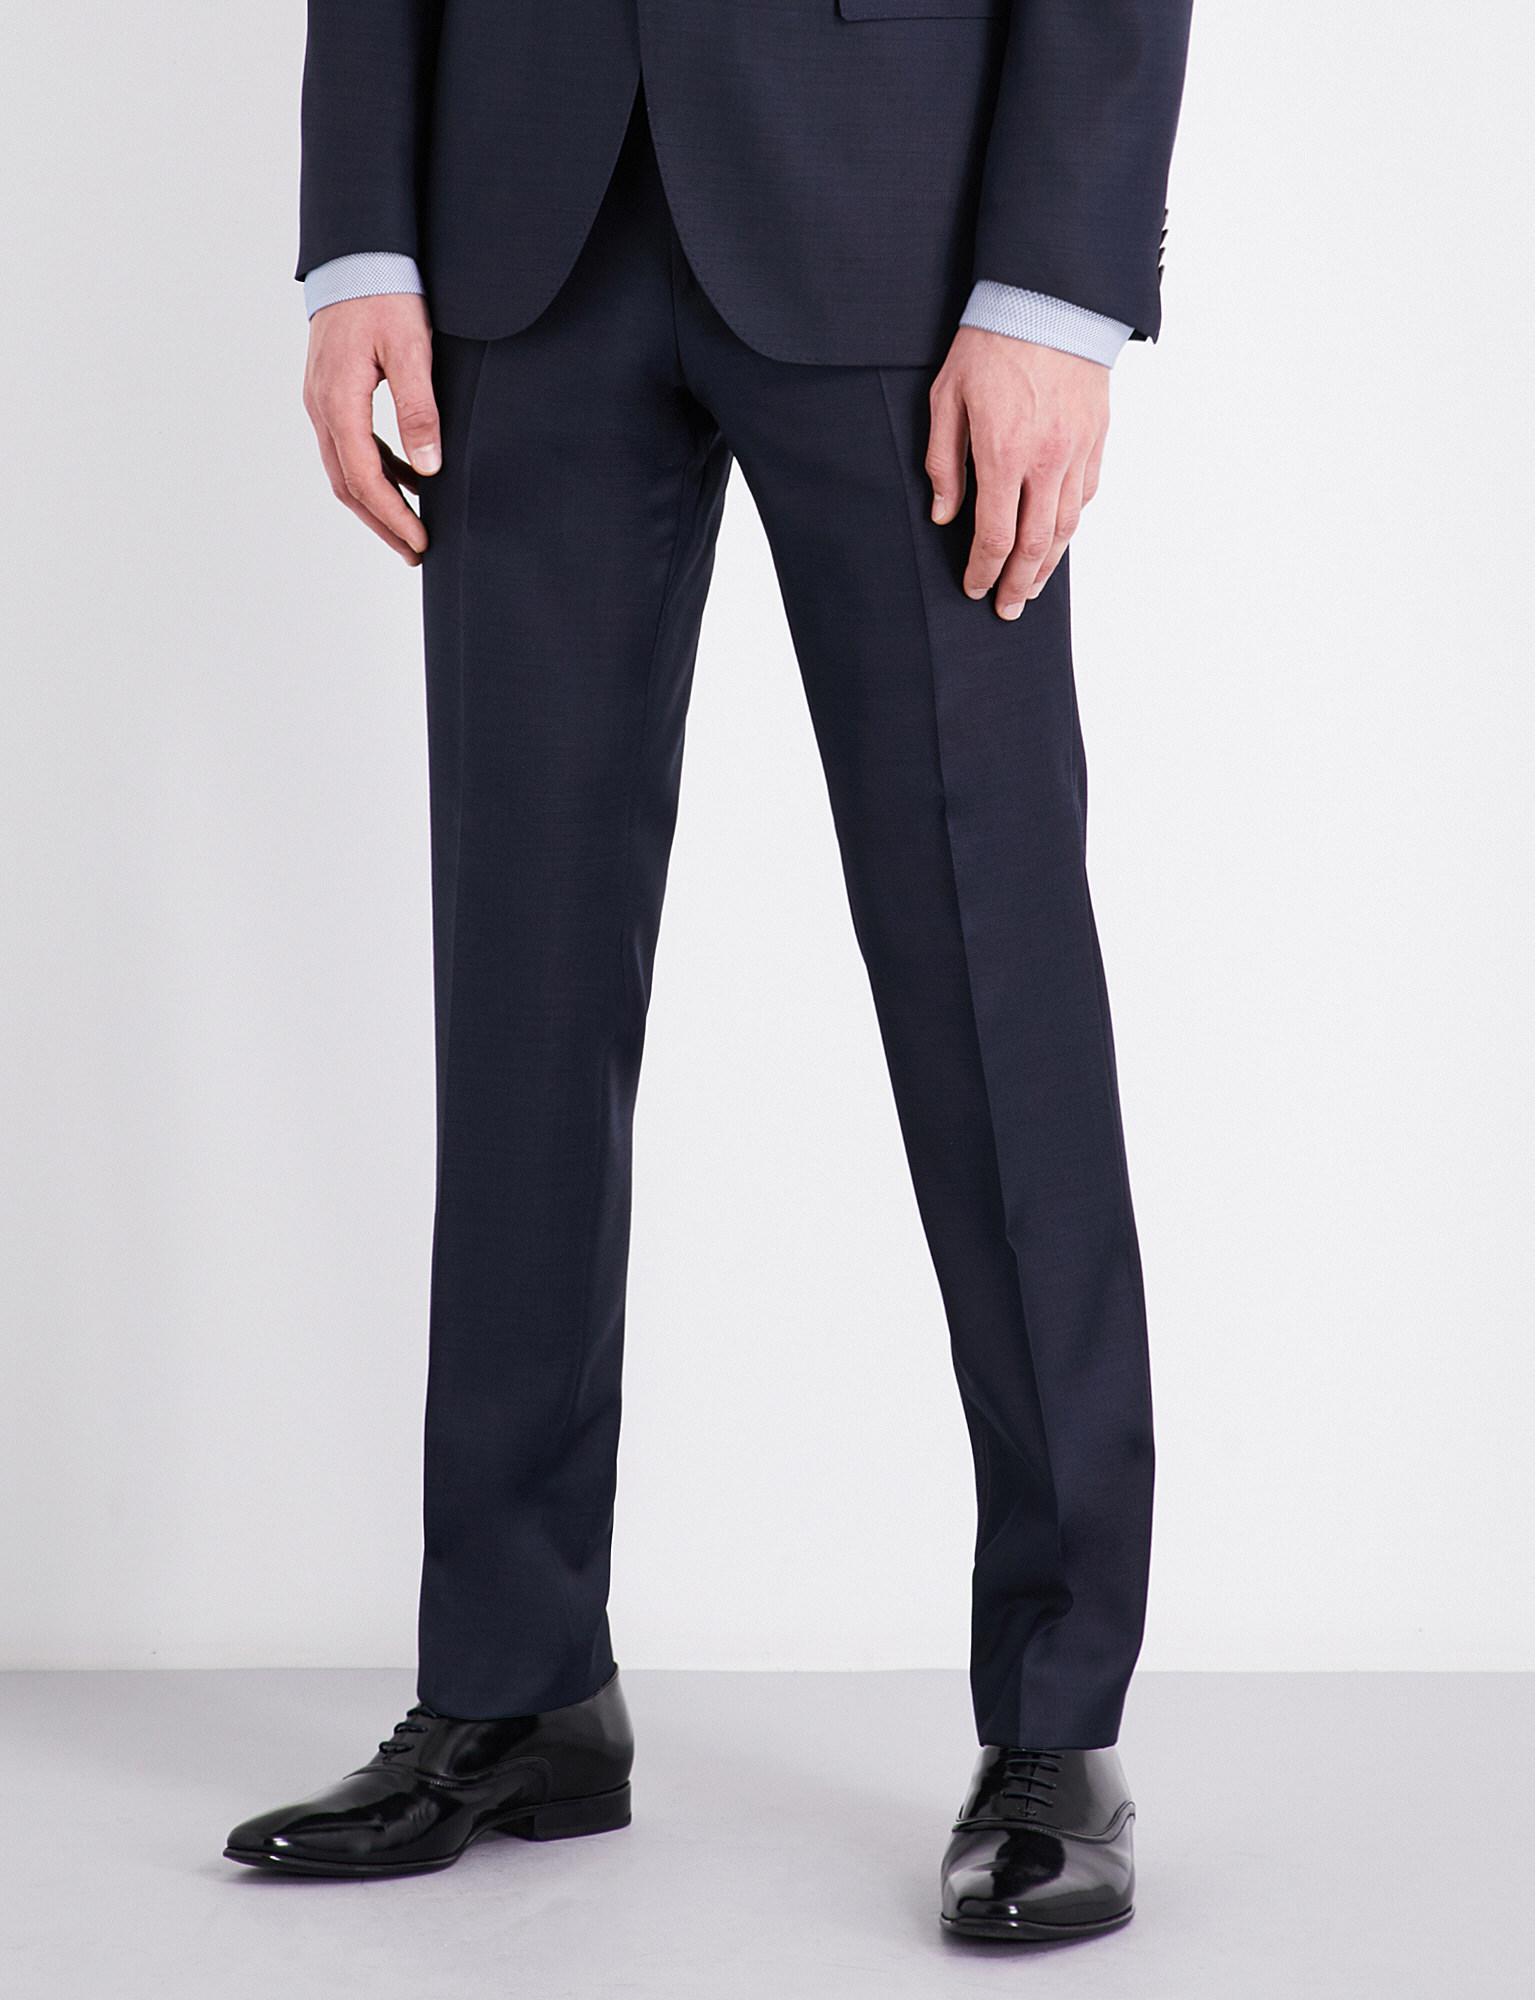 New Cheap Sandro Navy Blue Tapered Birdseye Wool Trousers for Men Sale Sale Online